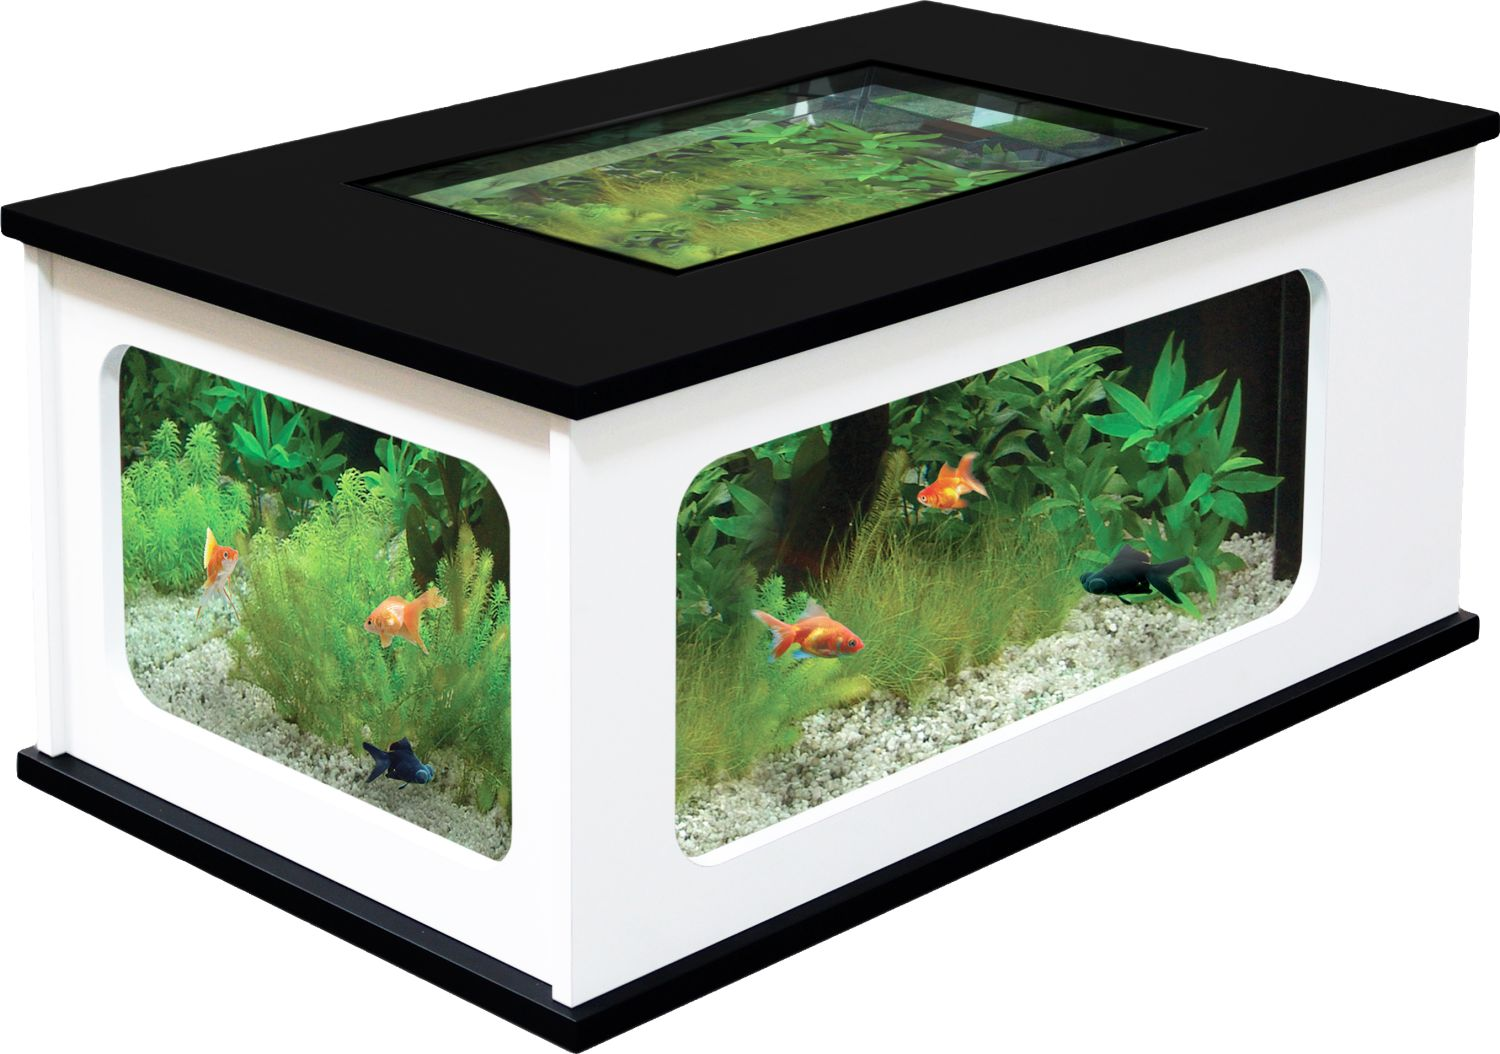 La table basse de la plus insolite la plus rustique - Table basse aquarium design ...